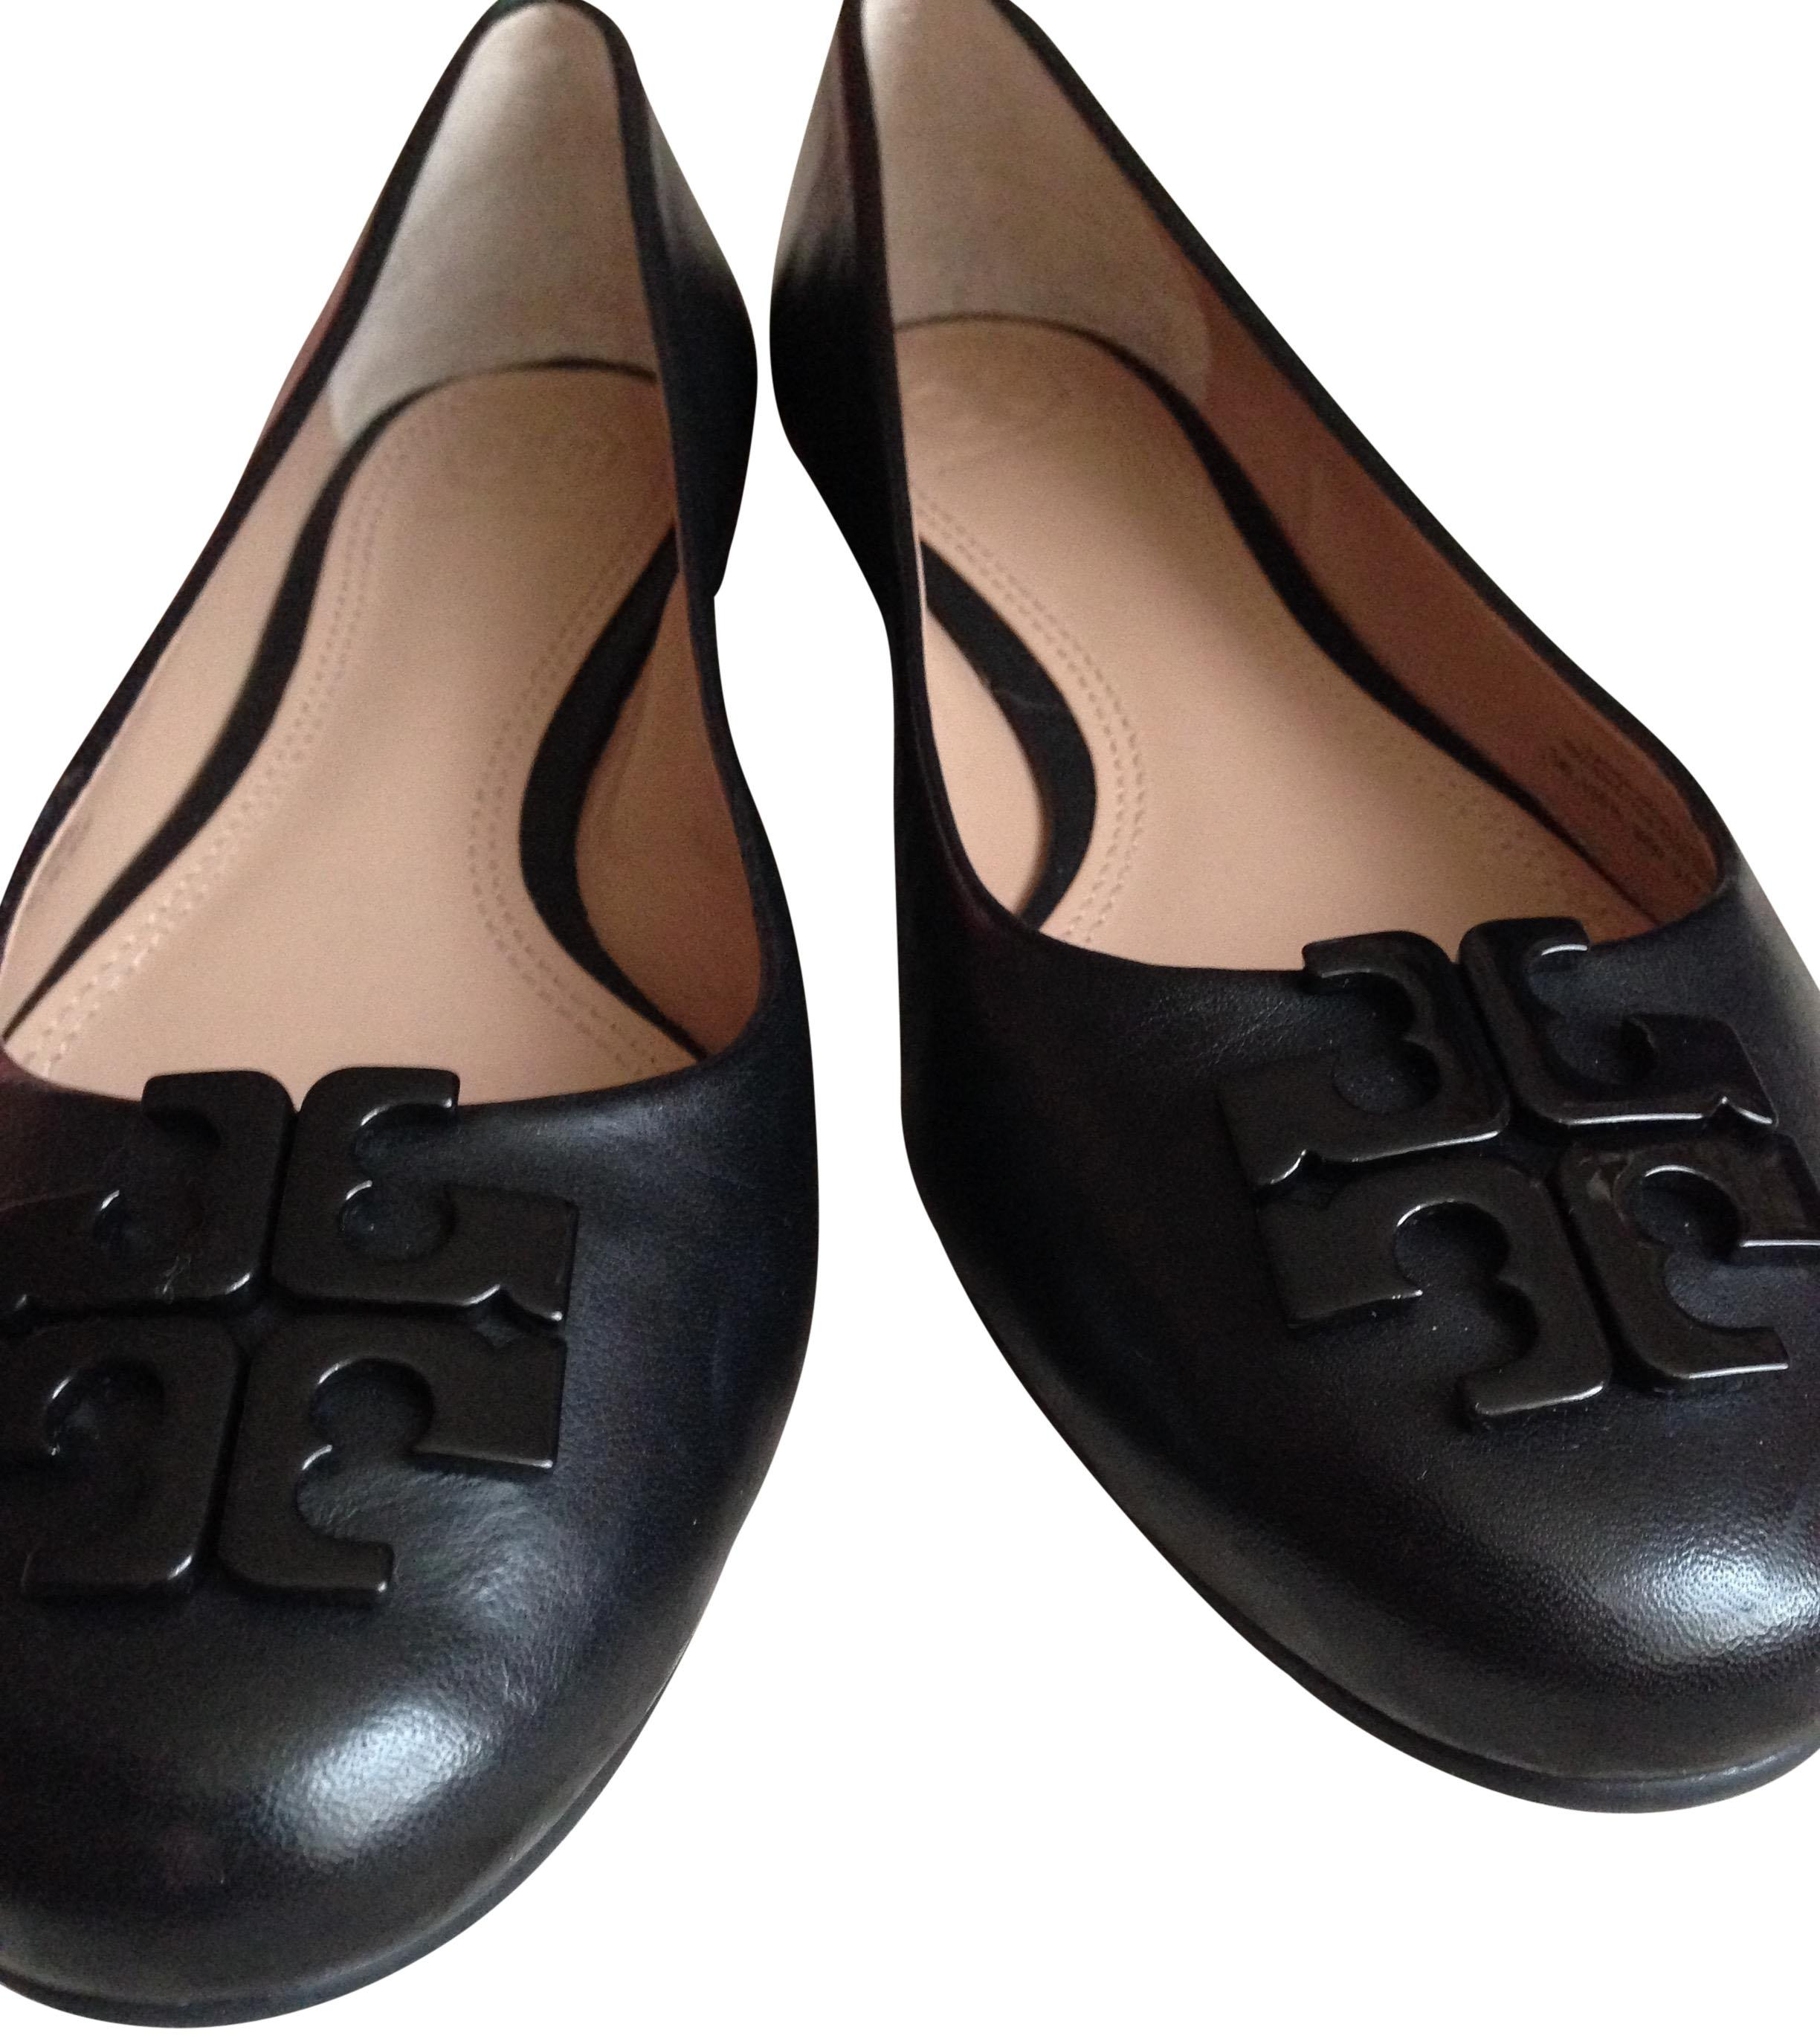 Tory Burch Leather Round-Toe Loafers clearance ebay real cheap online original cheap price zrcQocgpB9